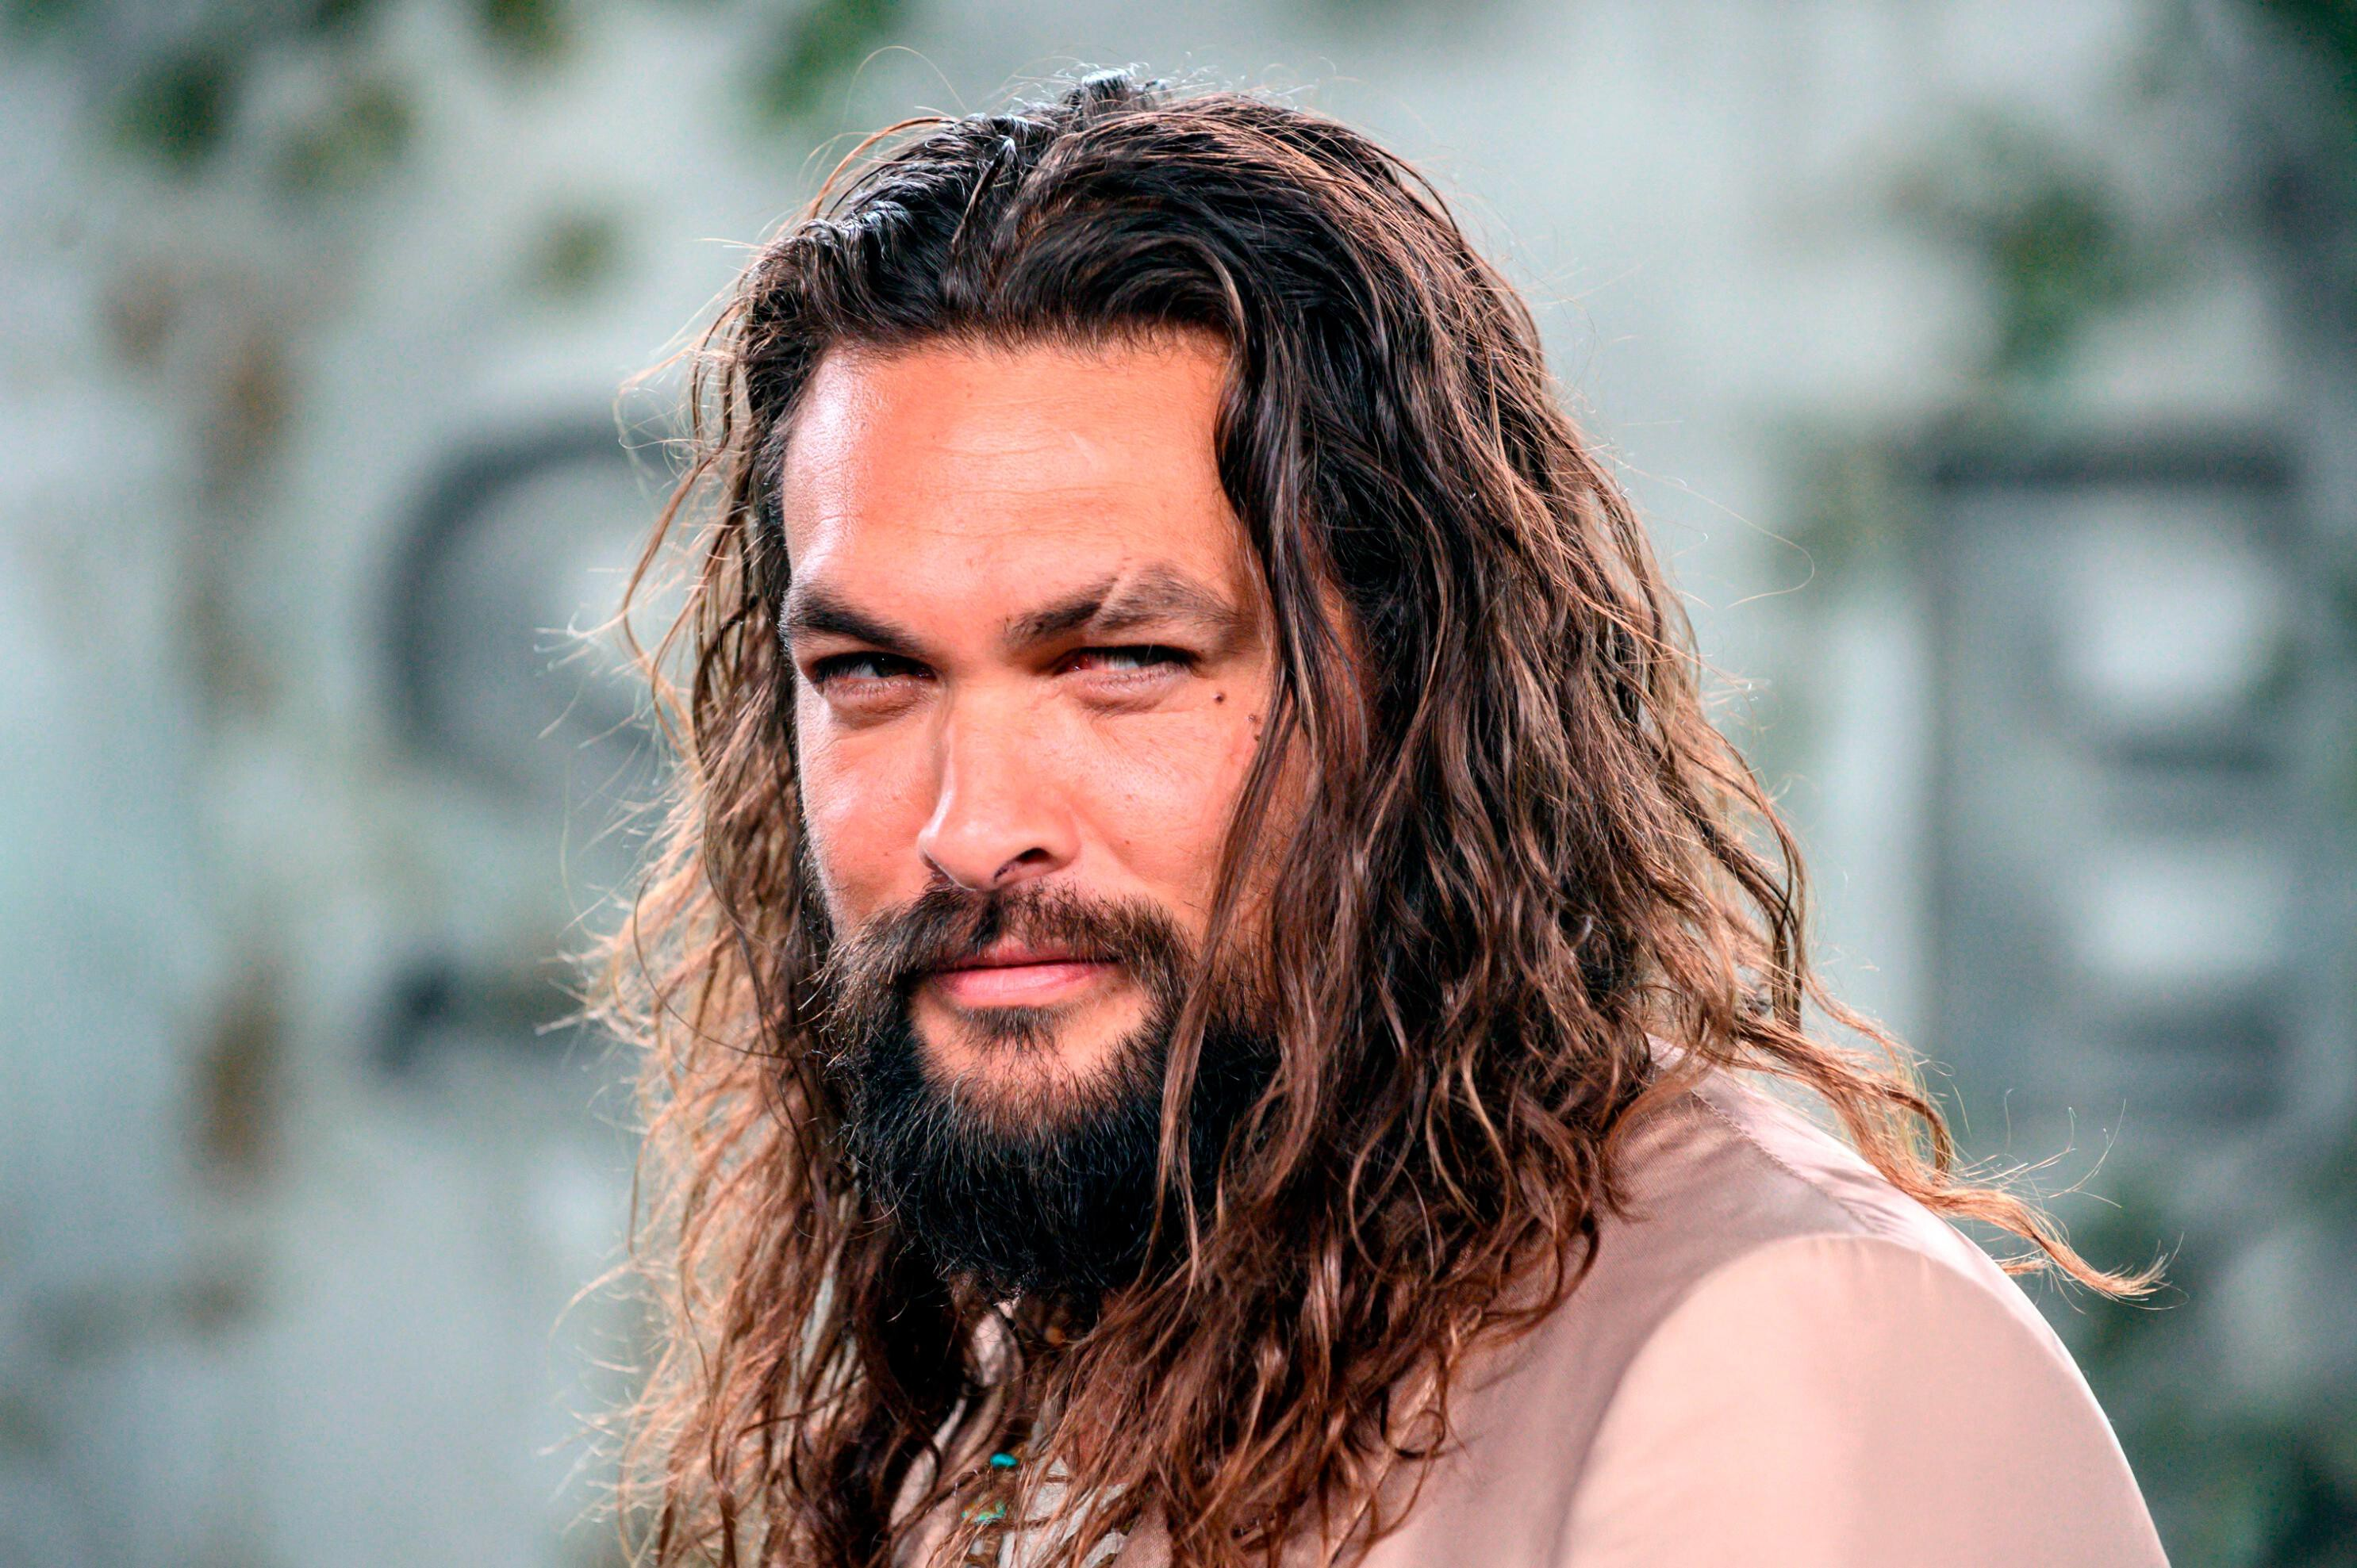 Jason Momoa gears up for 'Aquaman' filming with dye job